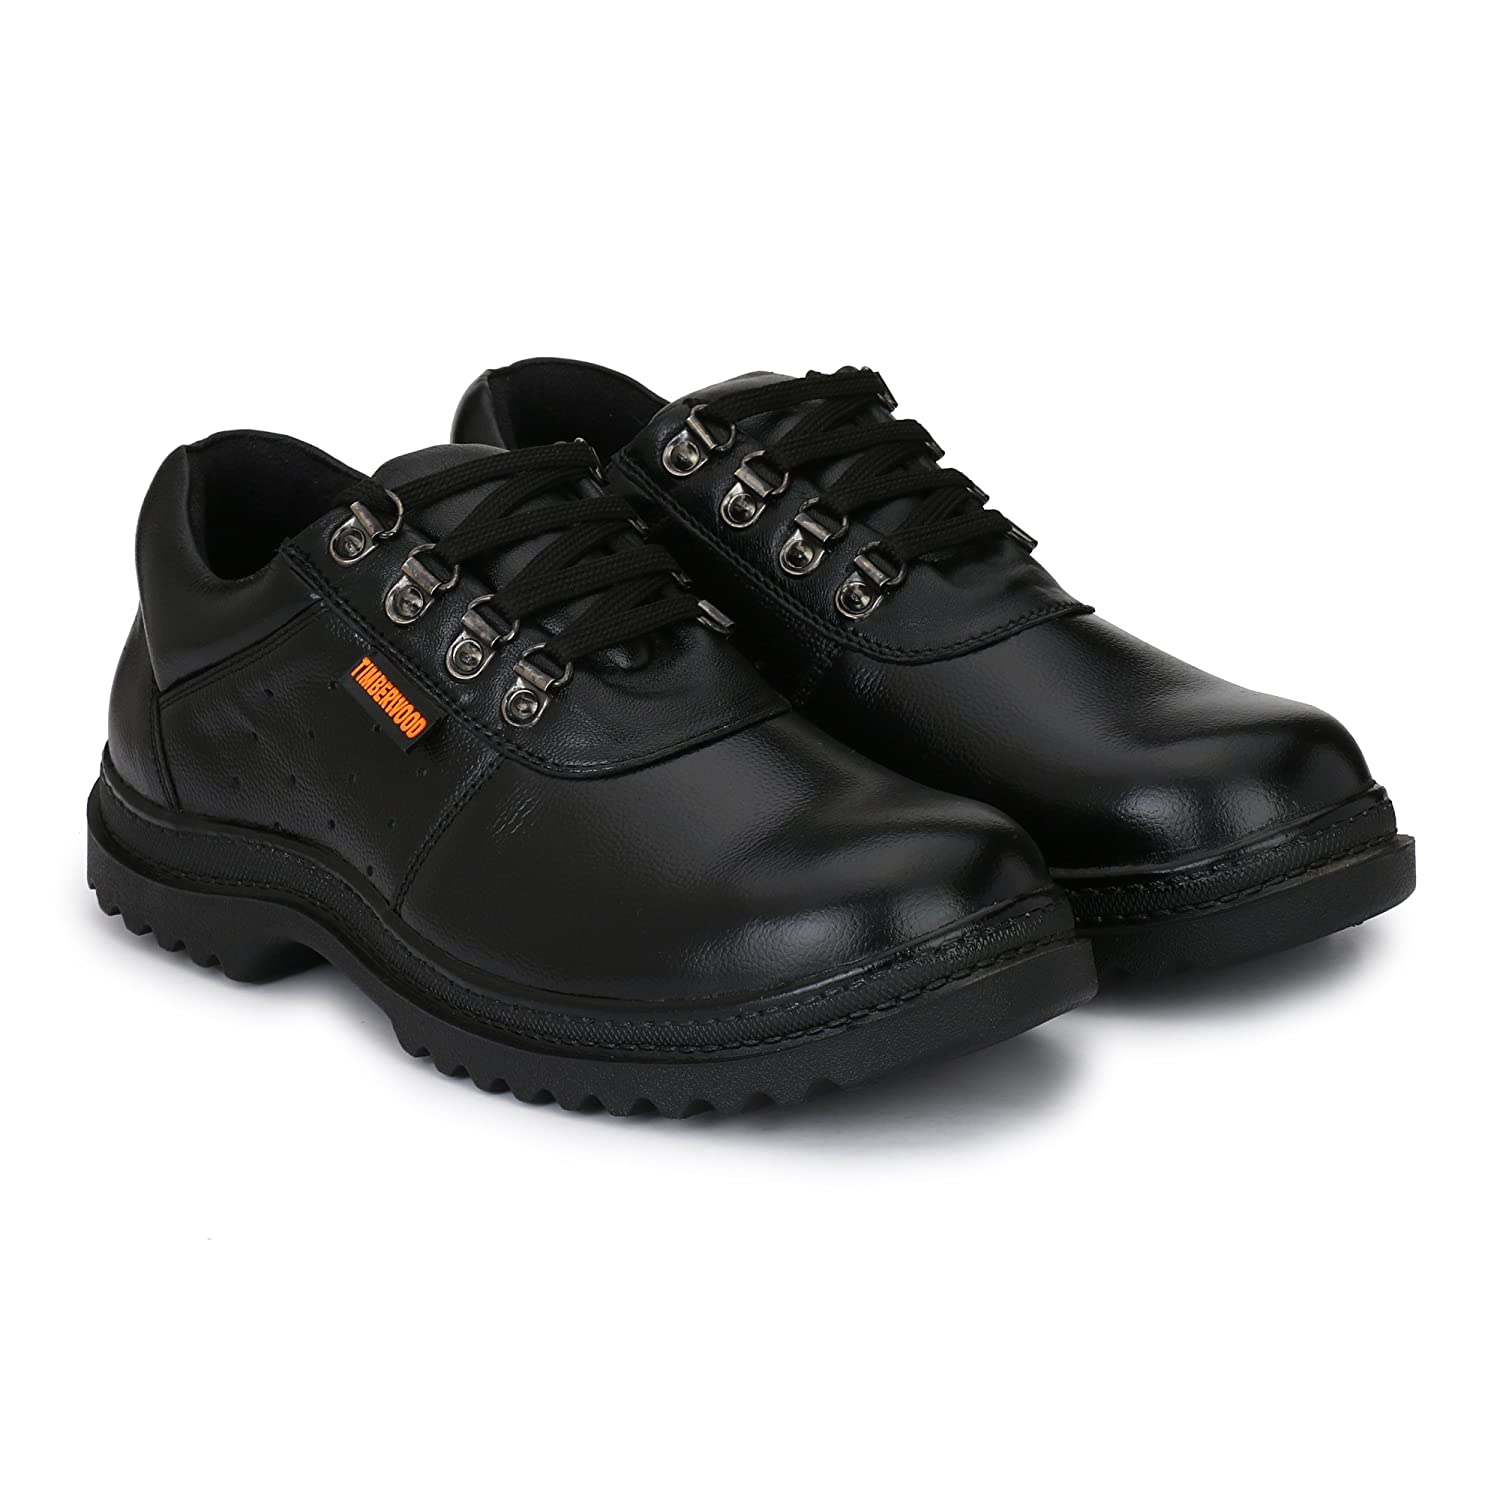 a92273639c59 Fashion Tree Timberwood Genuine Leather Steel Toe Safety Shoe For Men TW12A  (Black